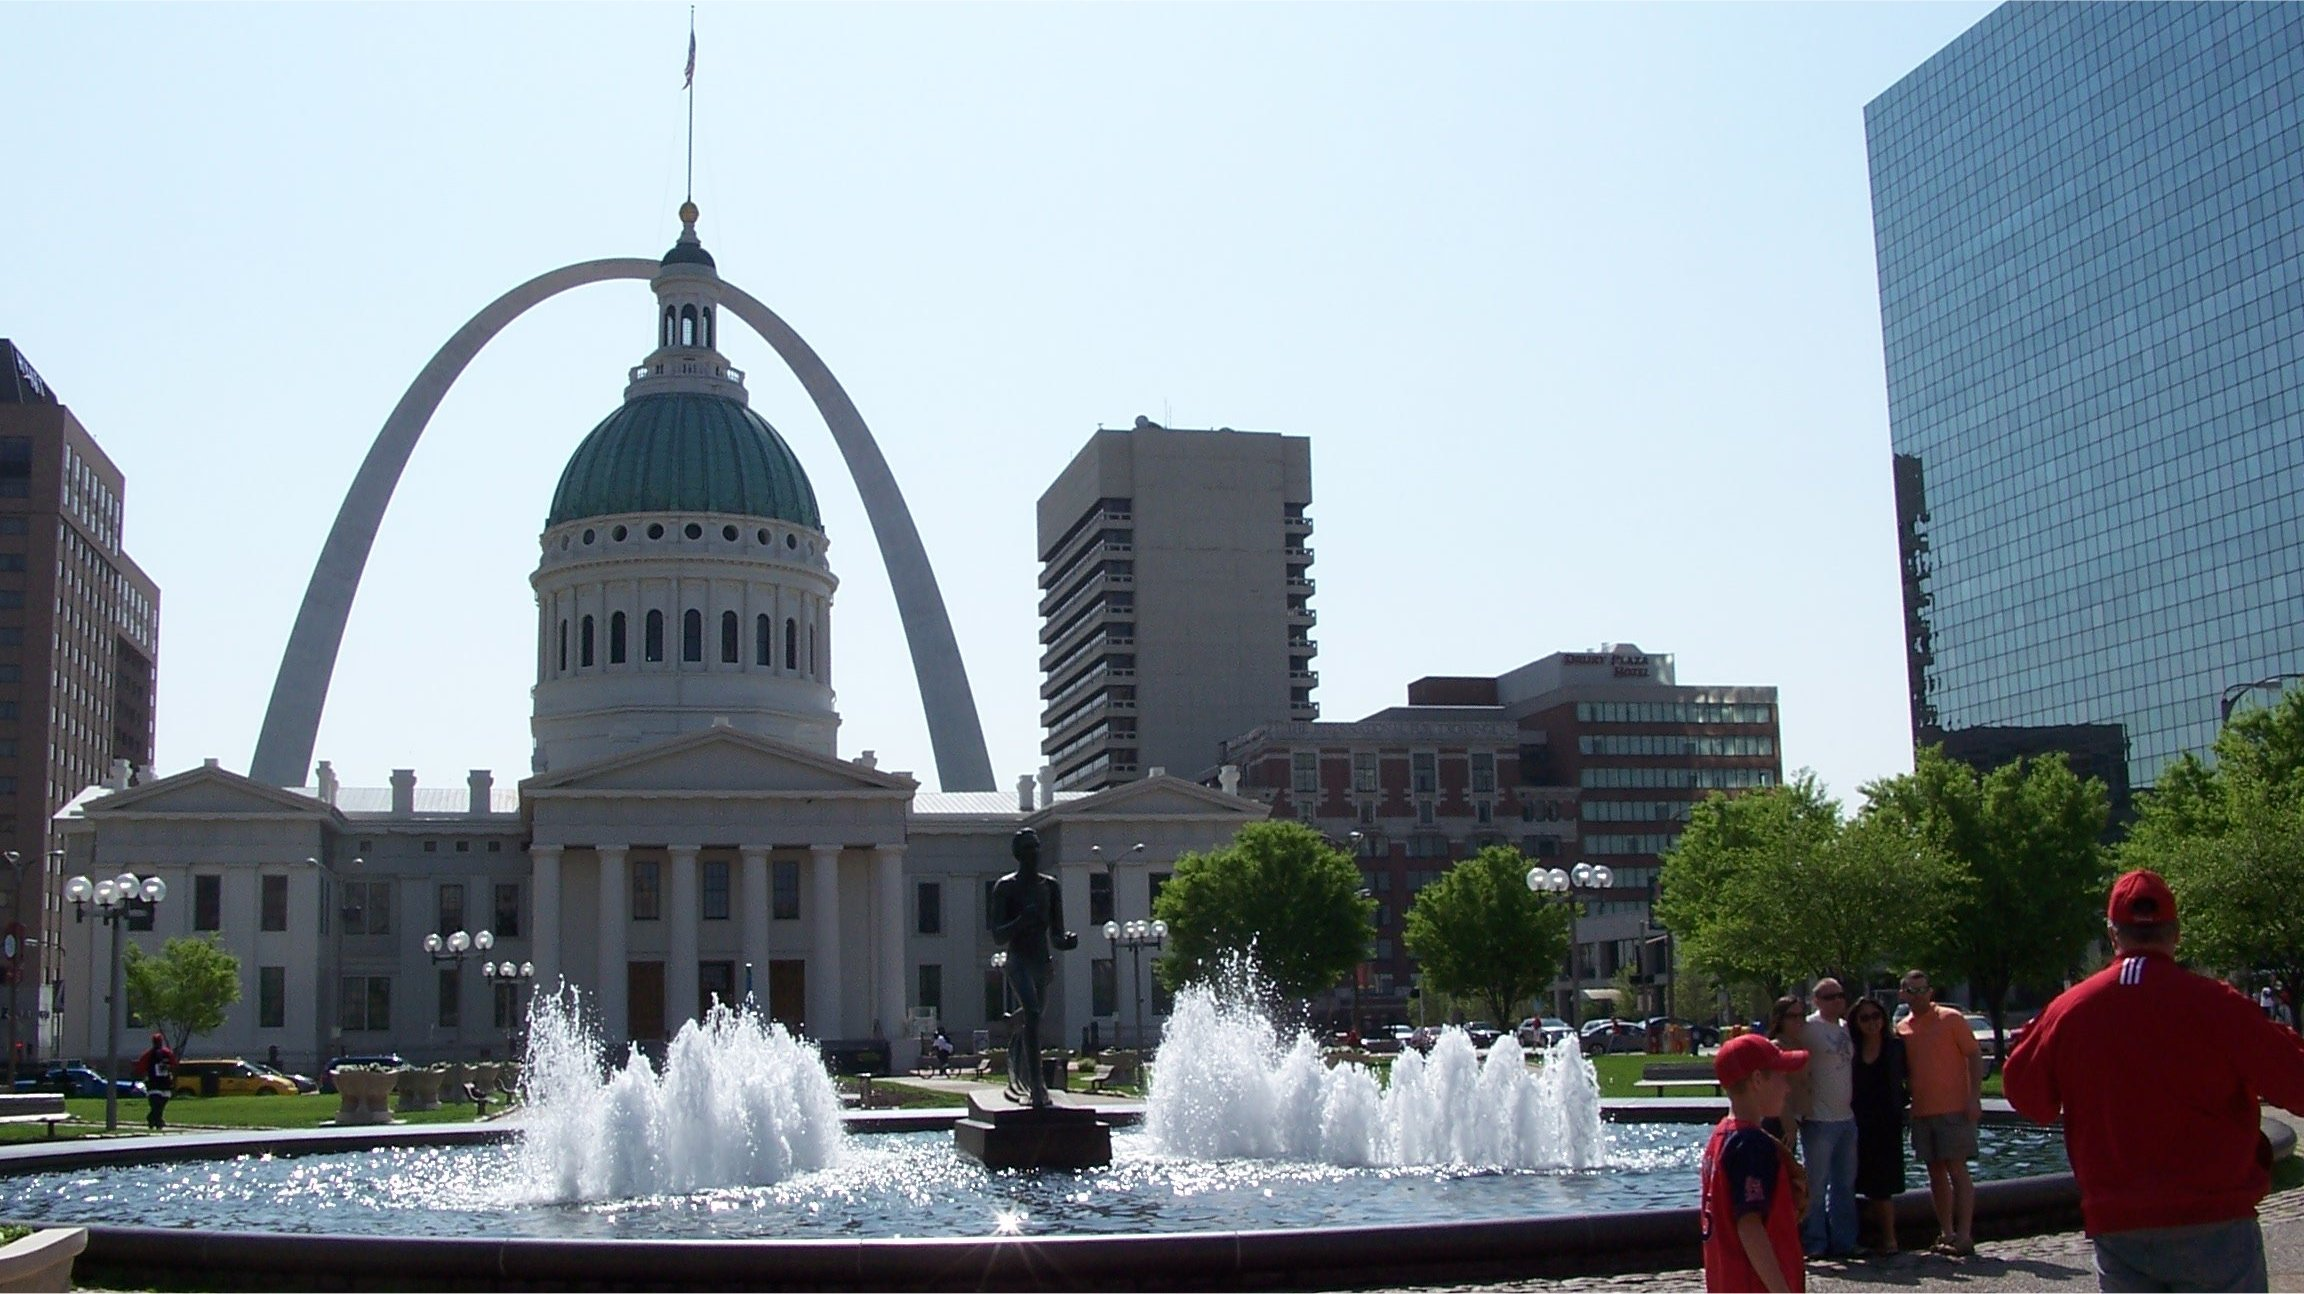 The Gateway Arch frames the Old Courthouse in downtown Saint Louis